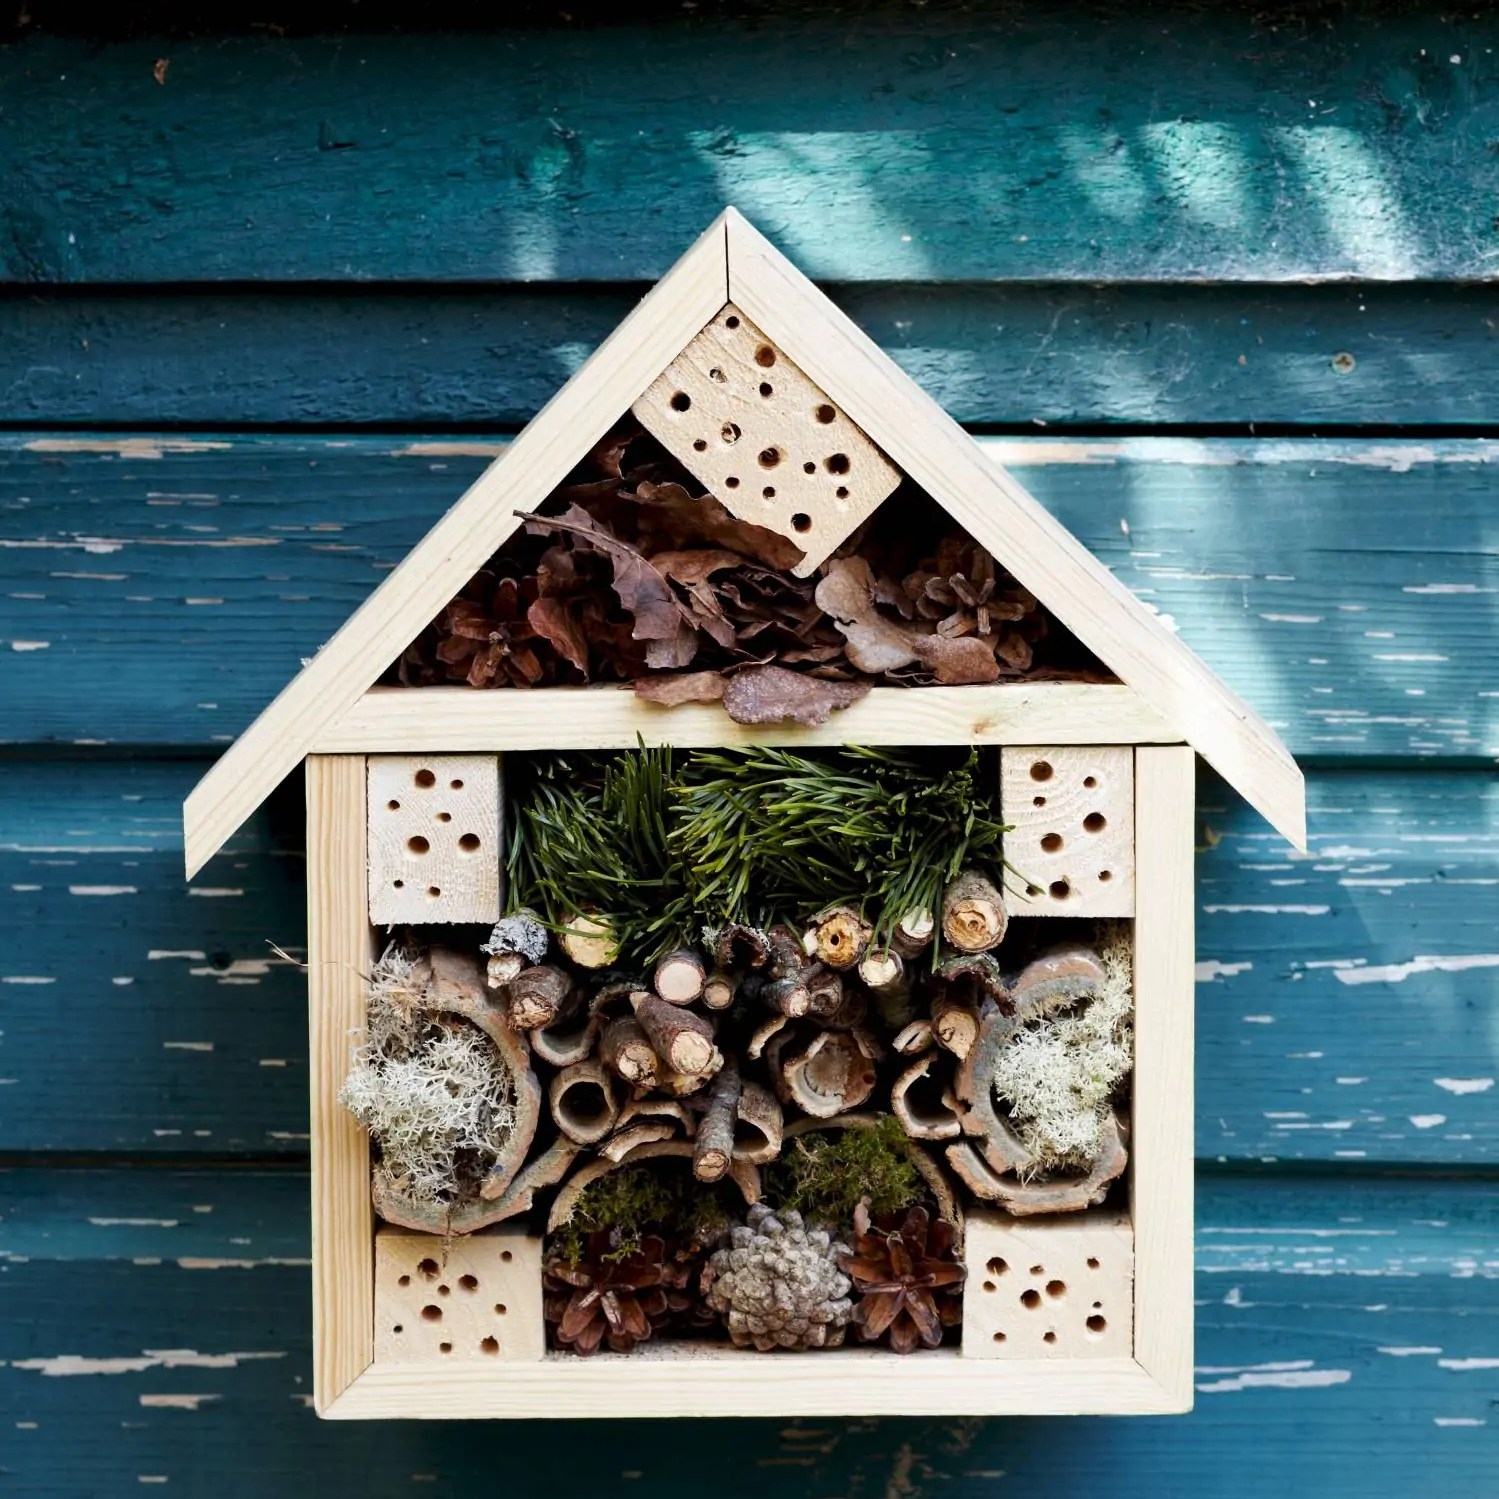 How to make a bug hotel from Liz Earle Wellbeing